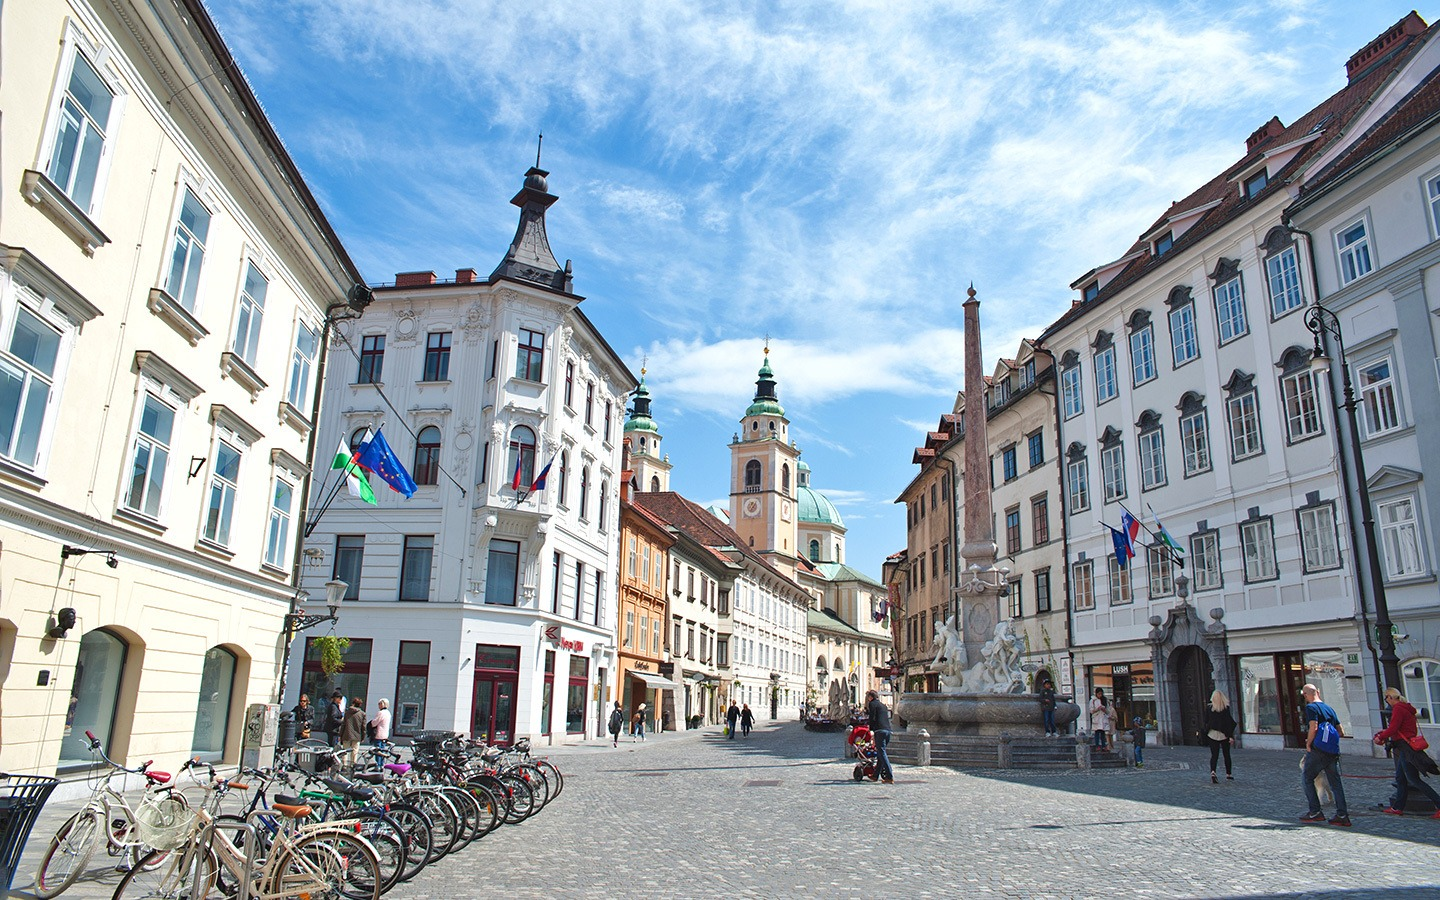 The streets of Ljubljana's old town